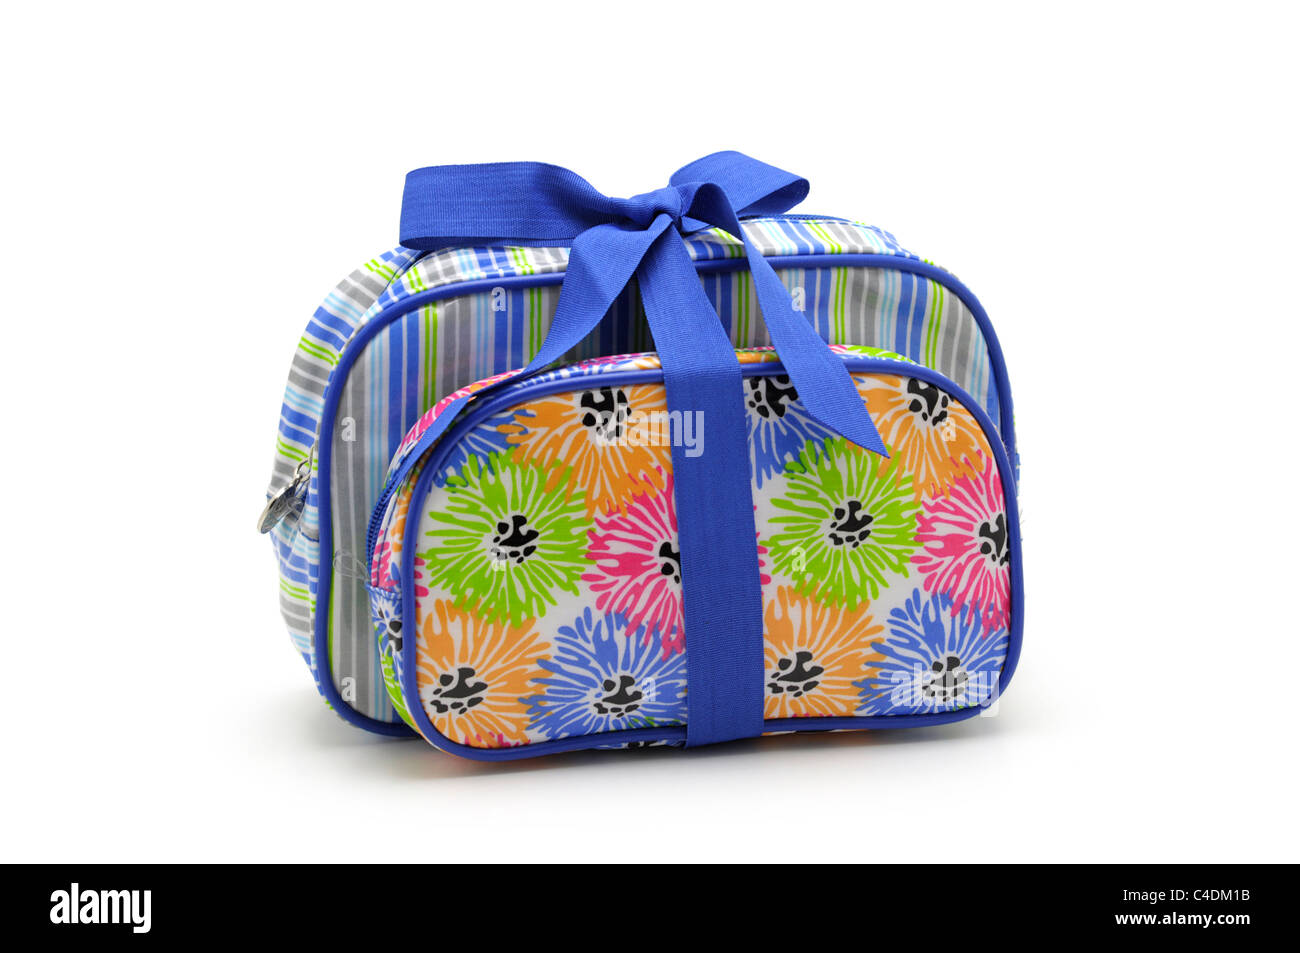 Cosmetics Bags, Cosmetic Totes - Stock Image